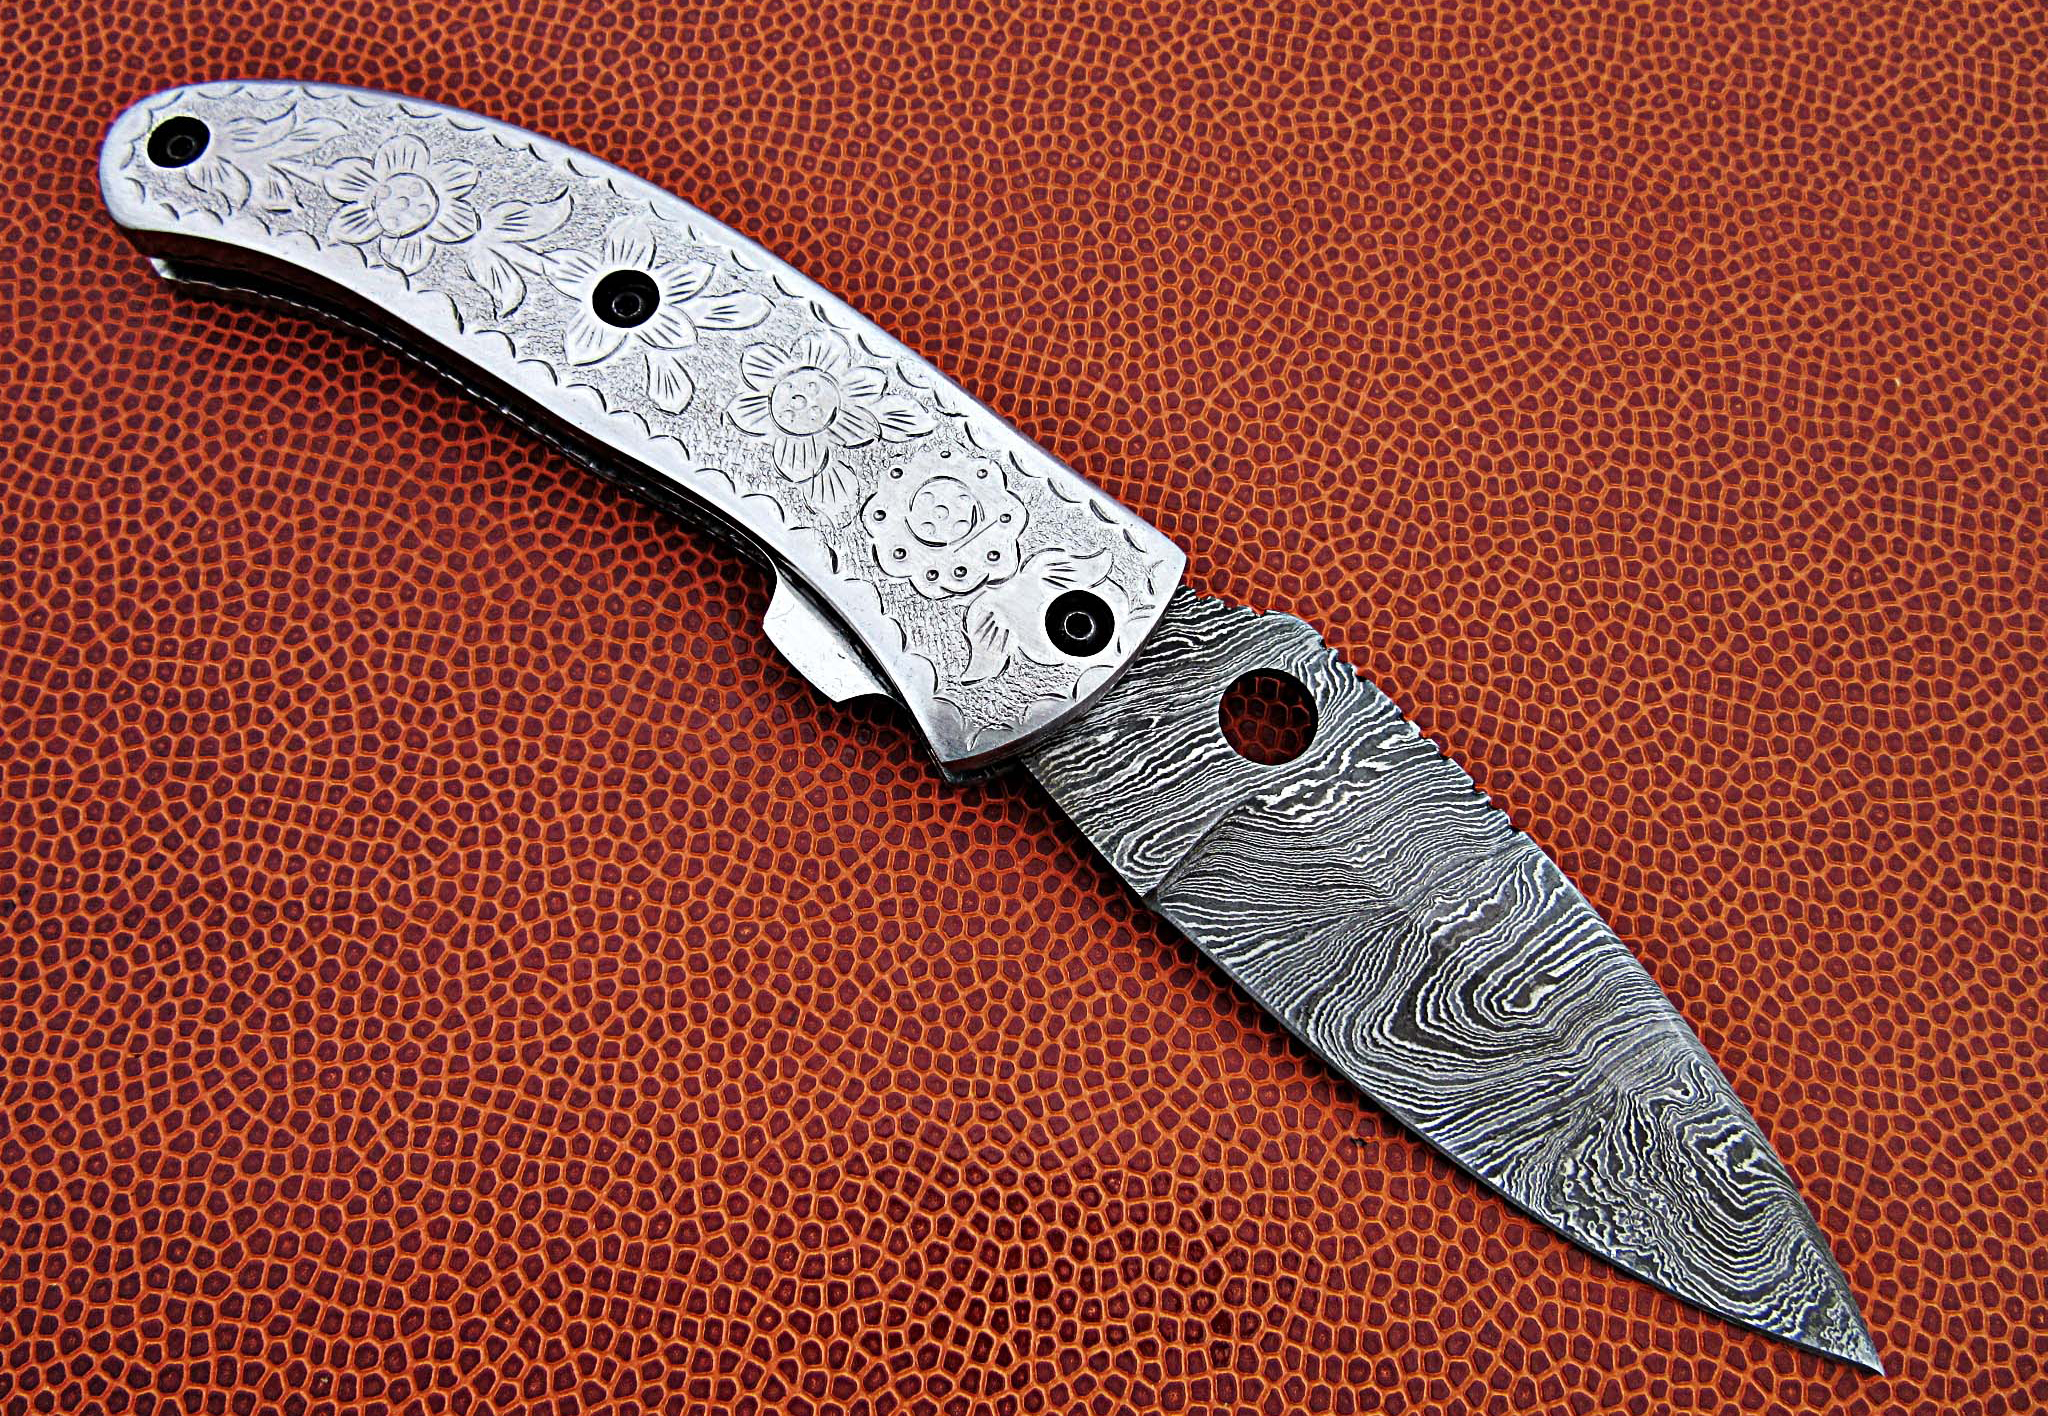 Folding knife with a metal handle